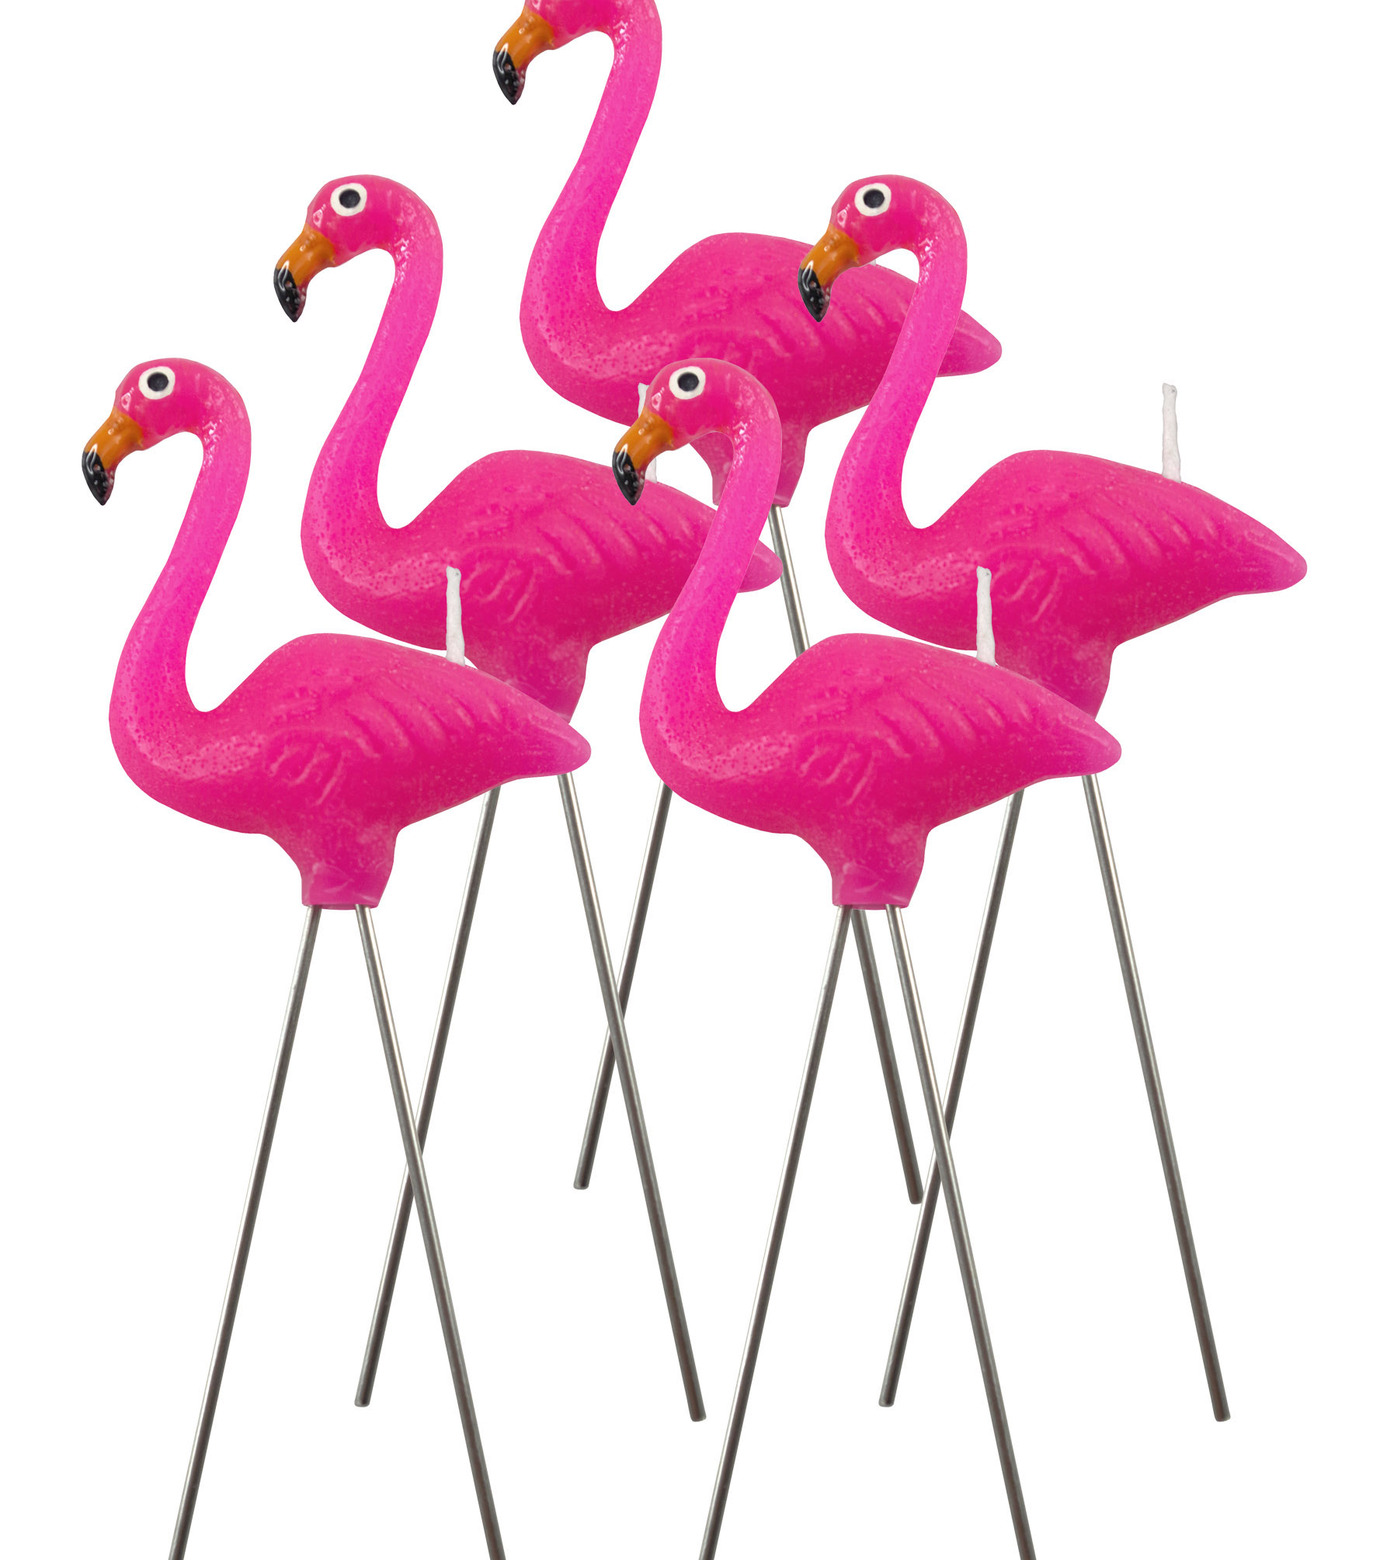 nuop design(ヌオップデザイン)のPink Flamingo Candles-PINK(OTHER-GOODS/OTHER-GOODS)-PFC-72 拡大詳細画像1